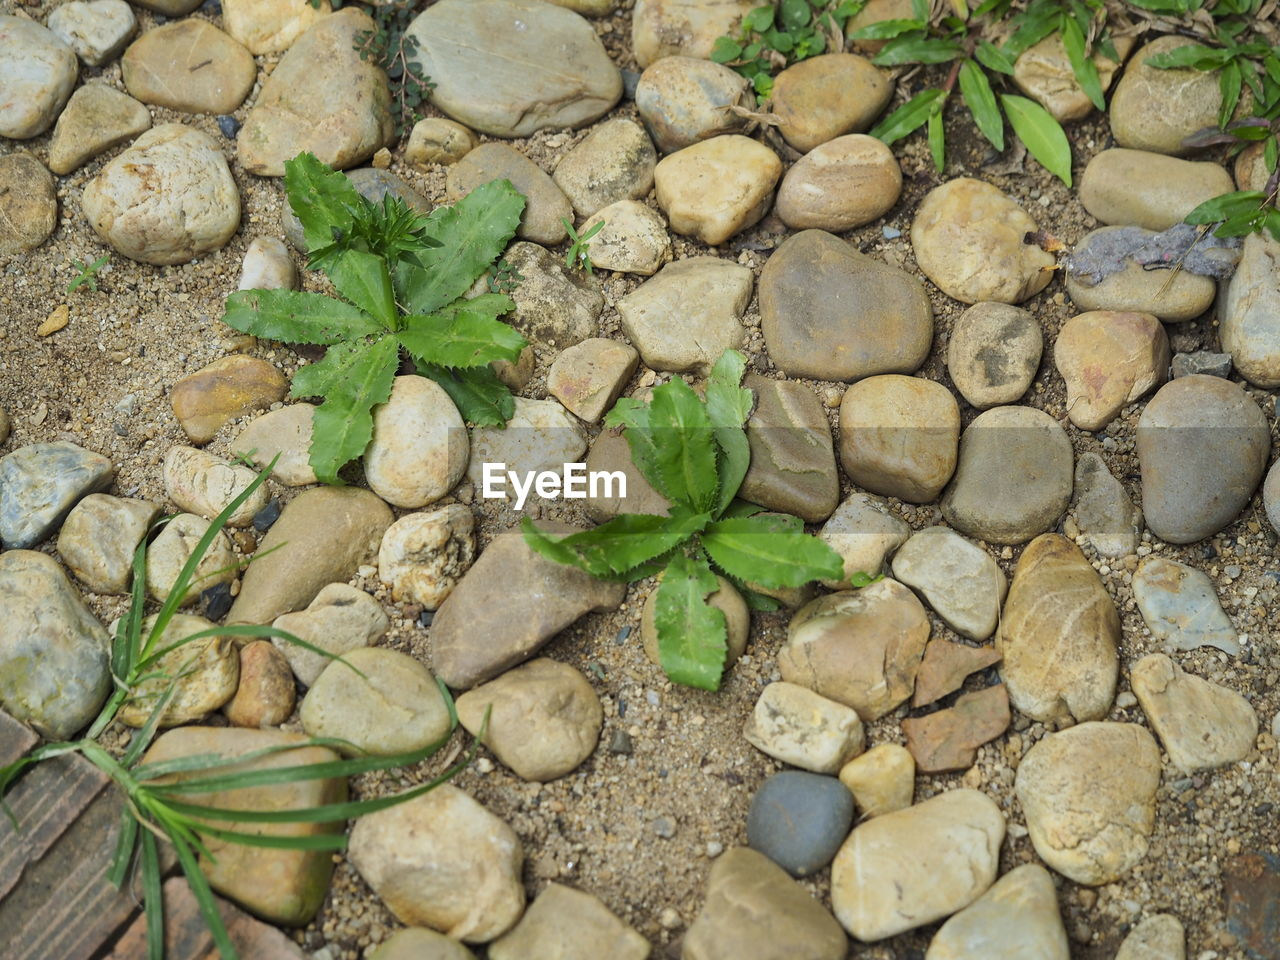 stone - object, pebble, leaf, rock - object, high angle view, green color, no people, day, nature, outdoors, plant, full frame, growth, large group of objects, close-up, backgrounds, fragility, beauty in nature, water, pebble beach, freshness